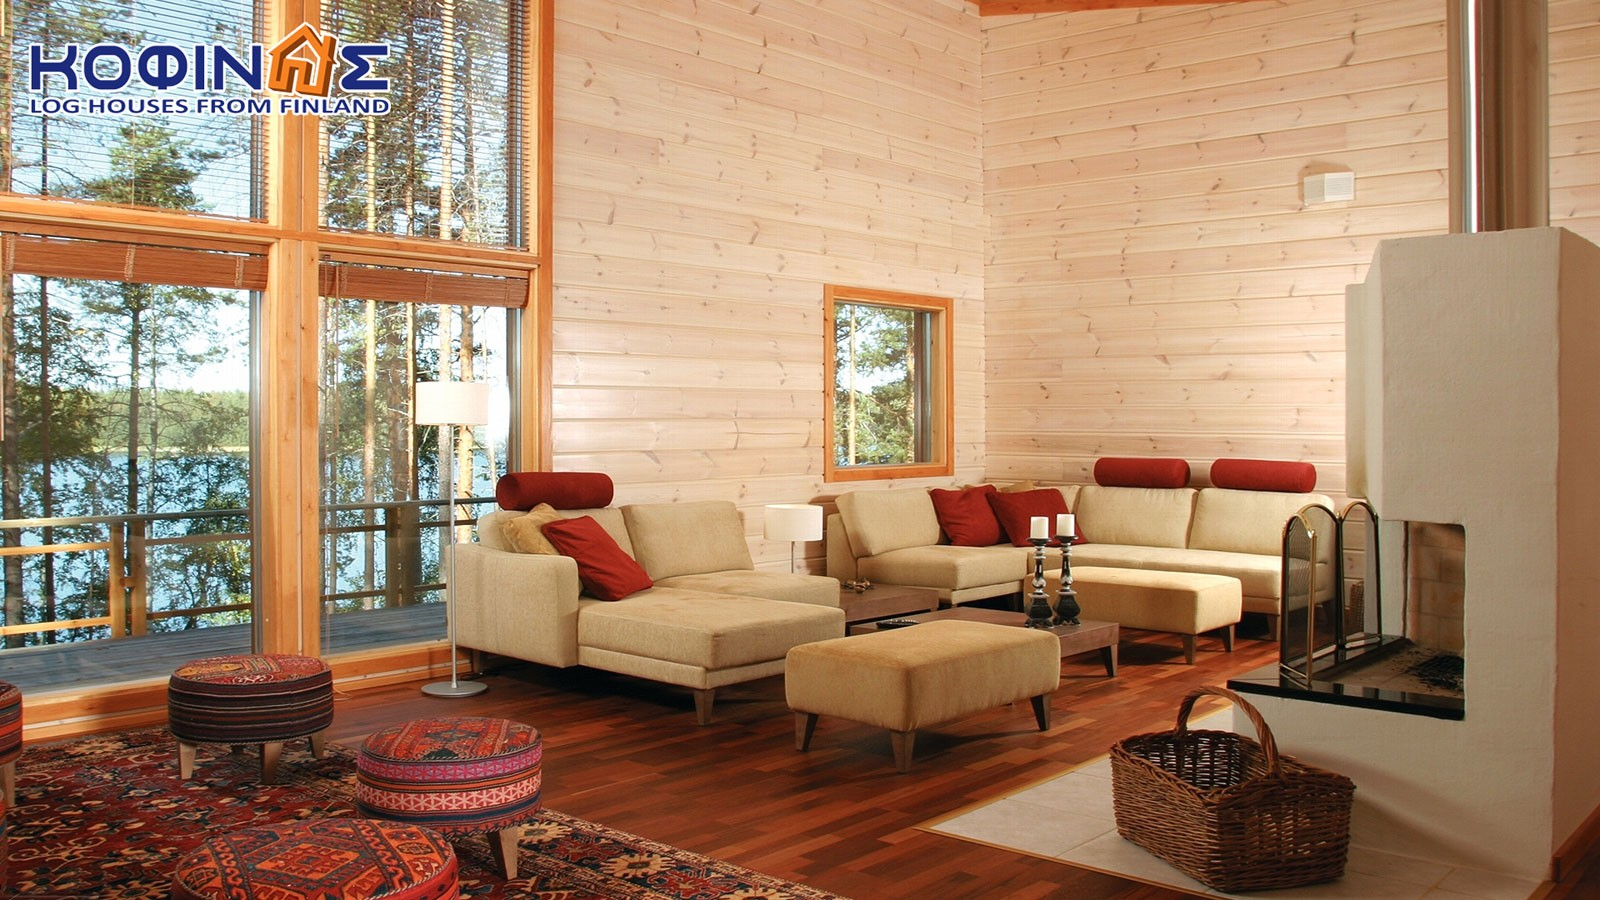 1-story log house XI-110, total surface of 110 m²